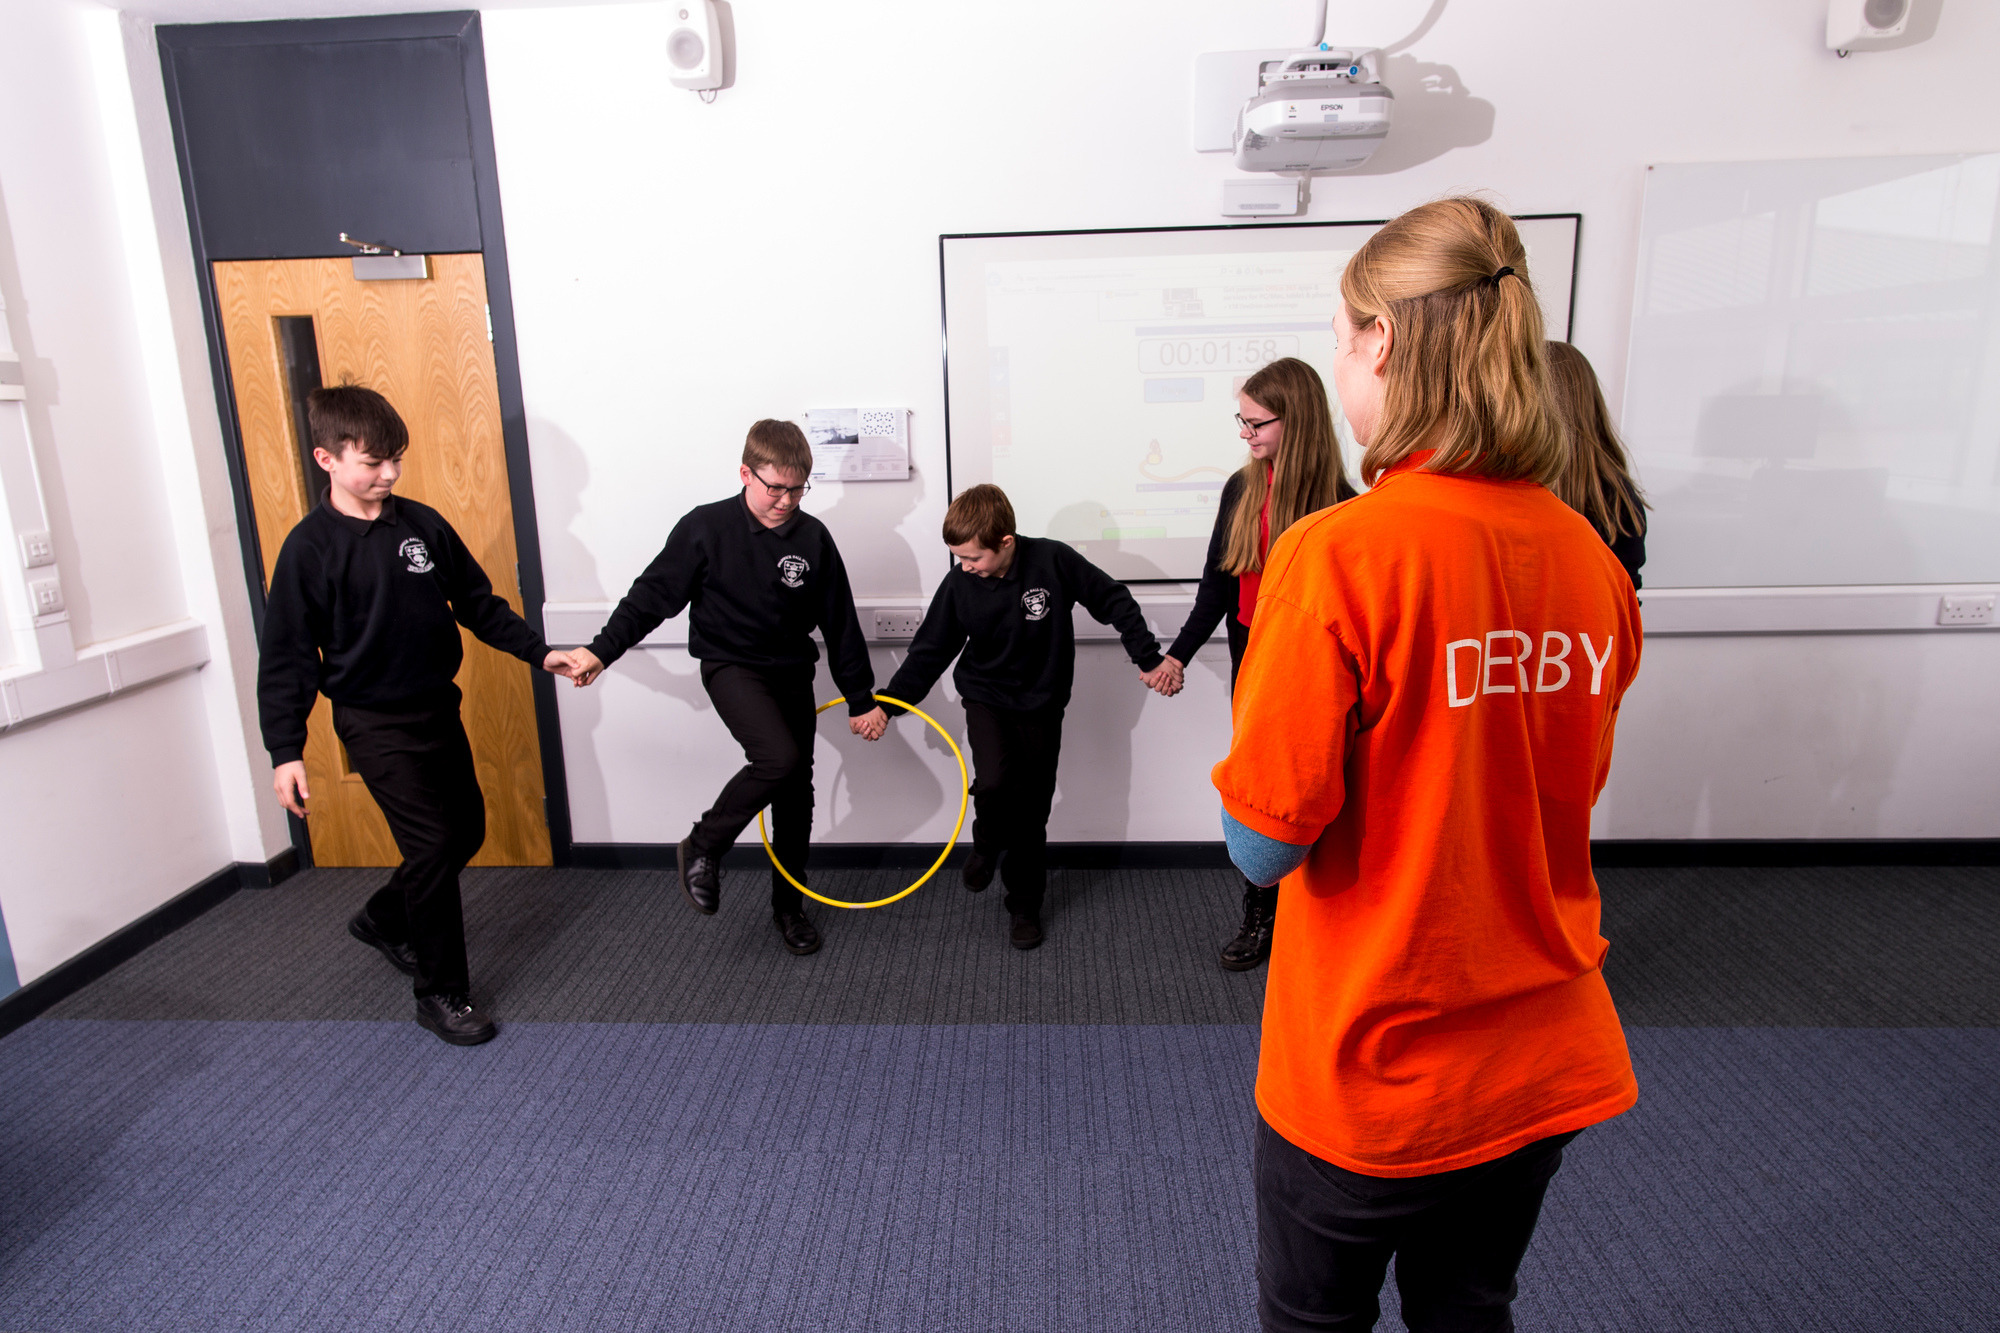 5 students trying to pass a hoop along a line with a Student Ambassador.